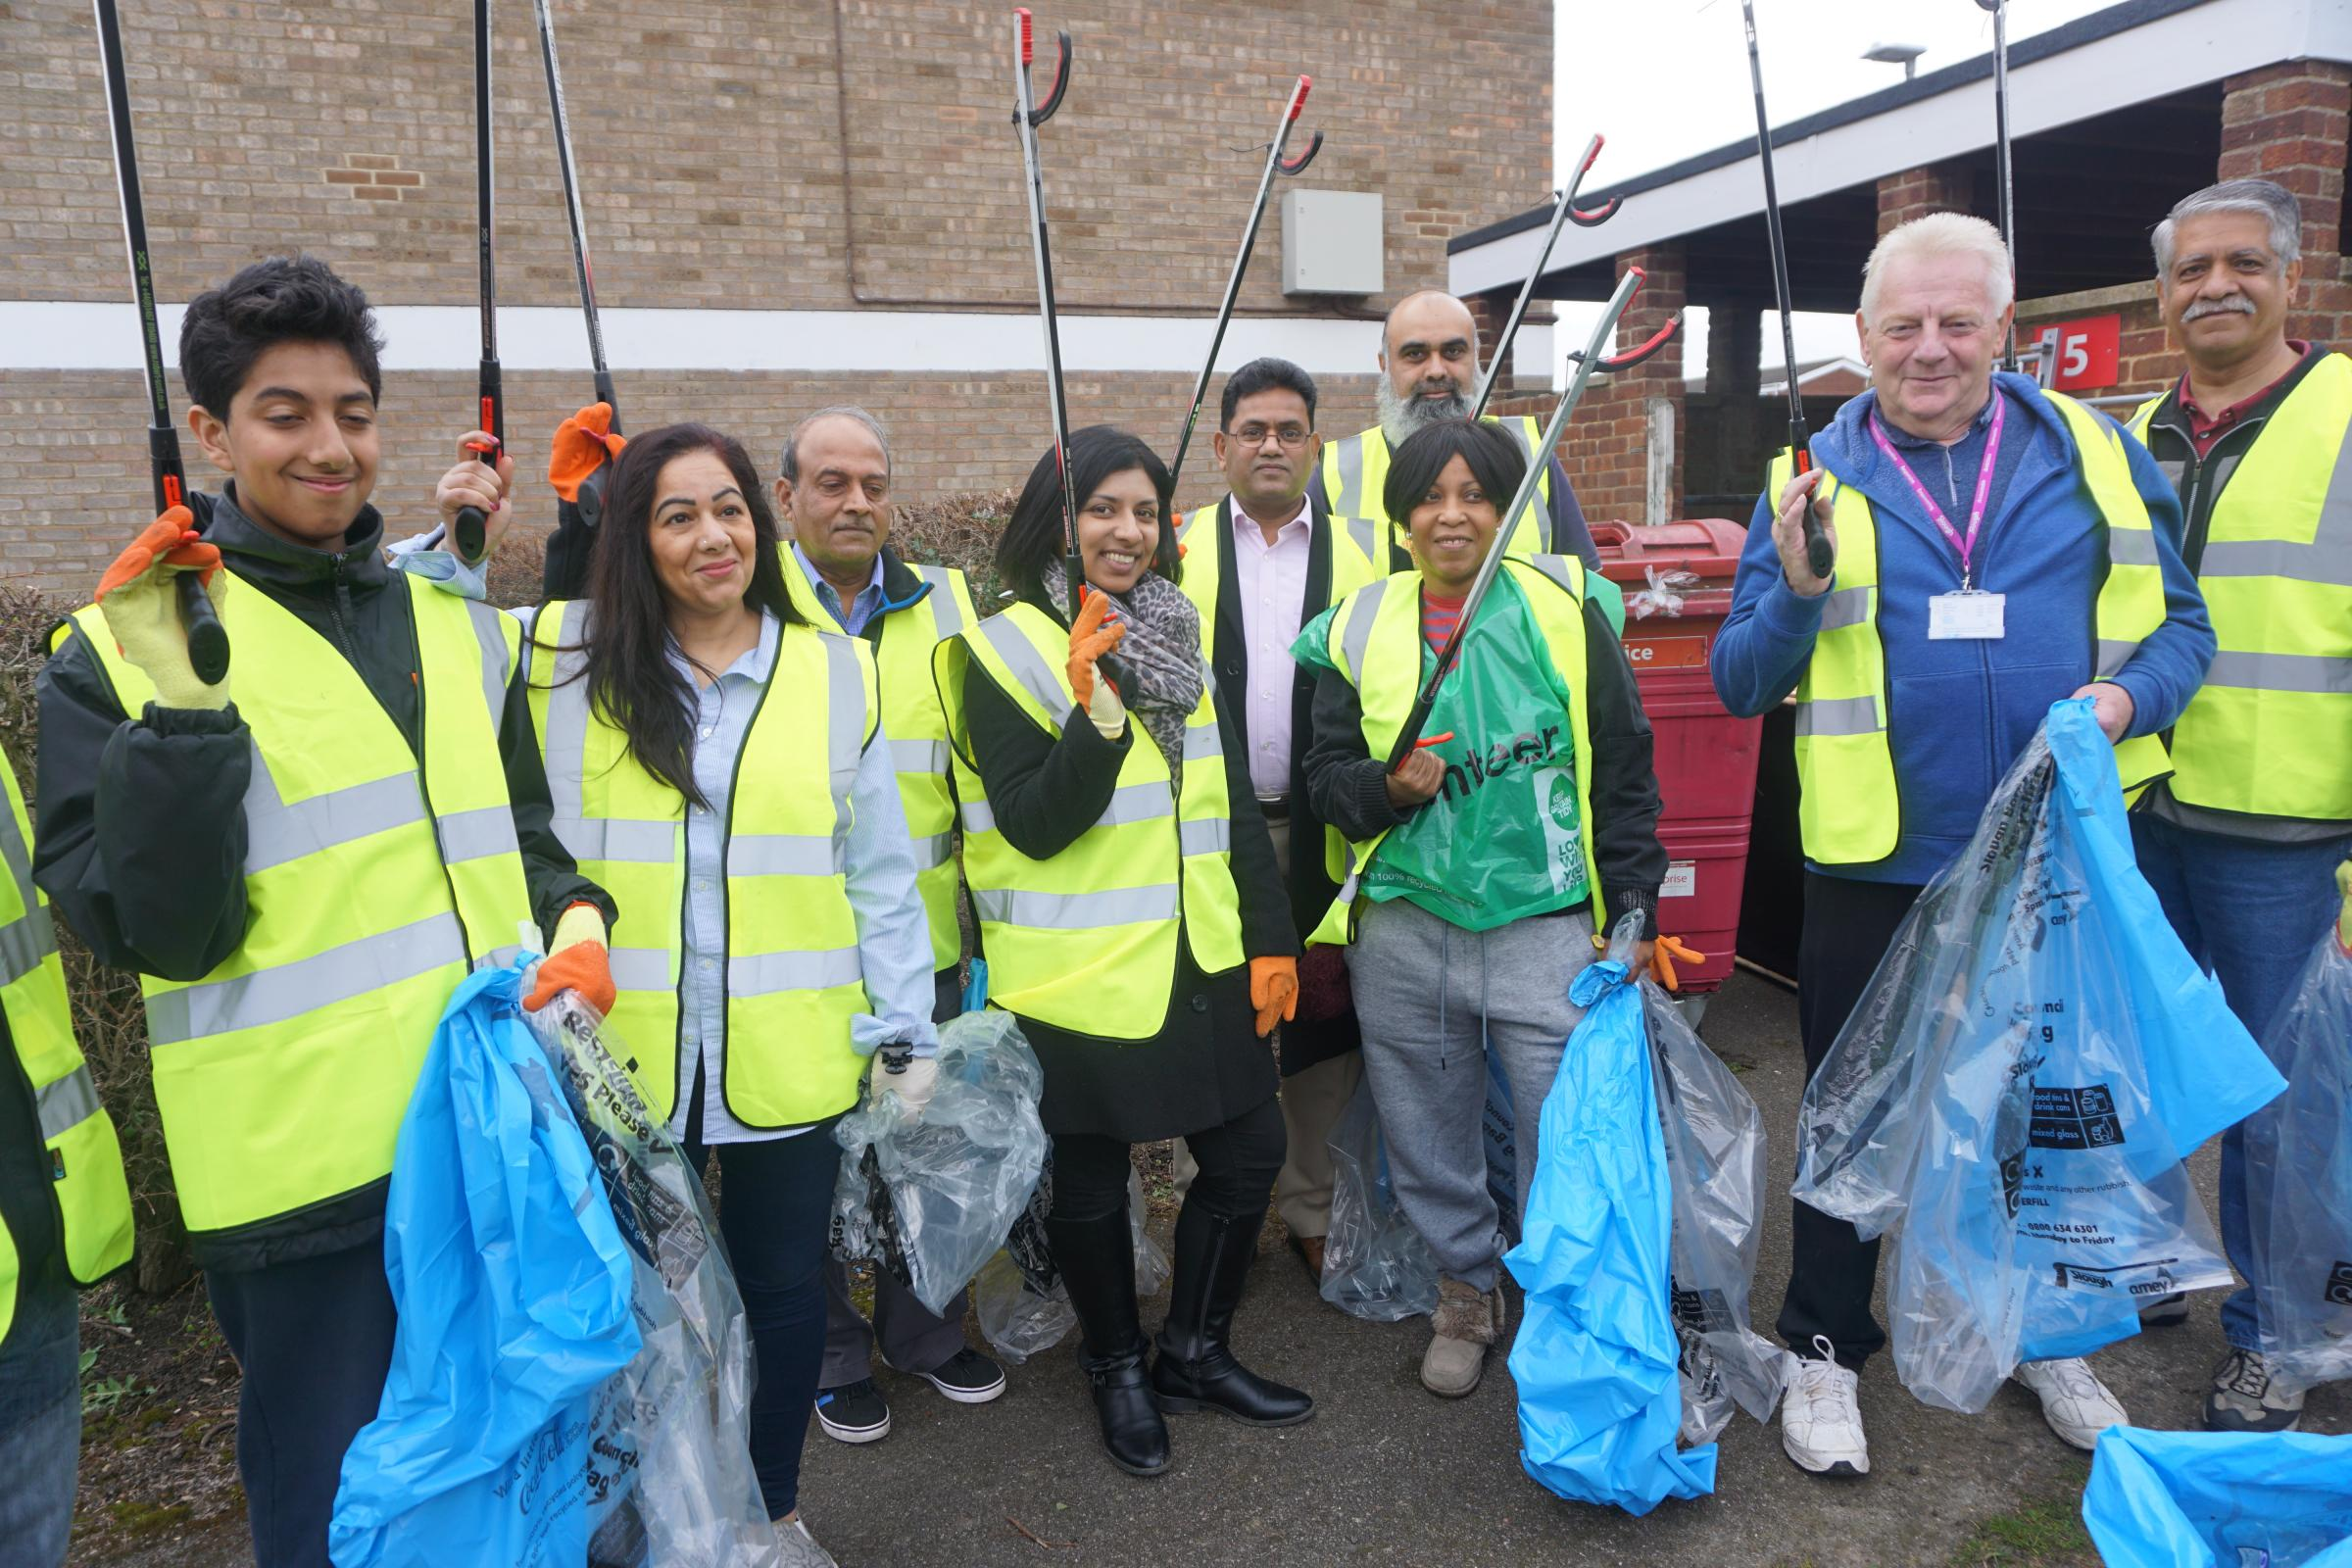 The litter picking team gets ready